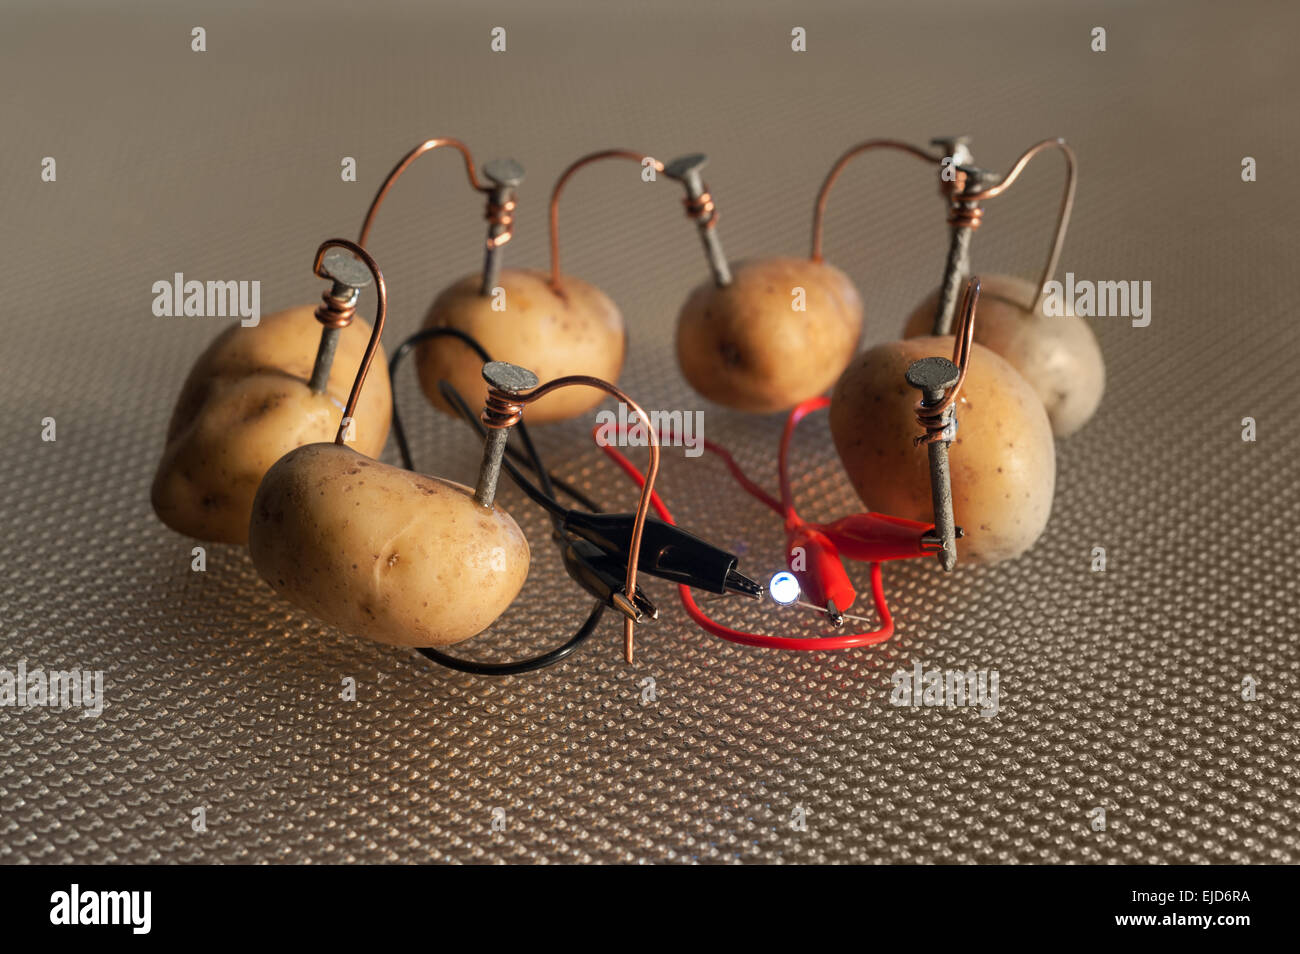 Alternative Energy Source Electrical Current Of Potato Arranged Is Series Provides Voltage To Light Led Bulb With Electrodes